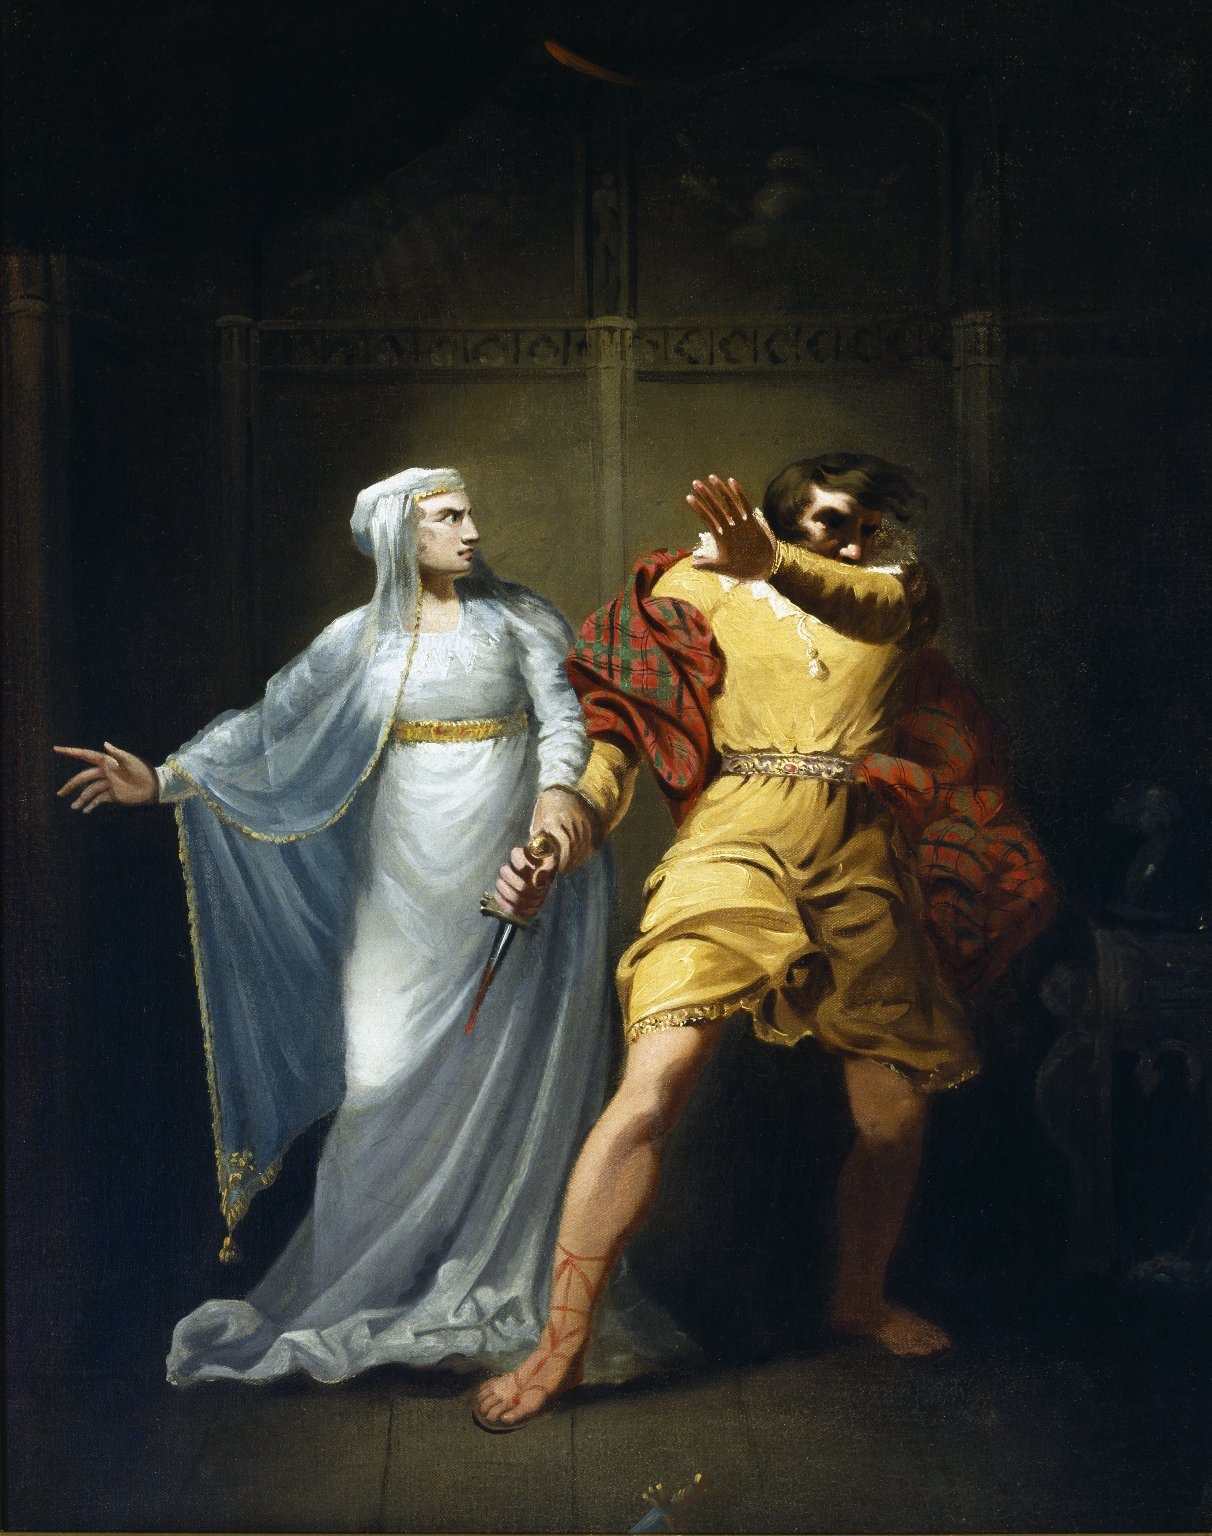 macbeth does the lady lead In act 5, scene 5, macbeth hears a scream and when he asks what it is, he is told that it is lady macbeth, who is dead macbeth does not ask how she died, and he tells his servant that she would .